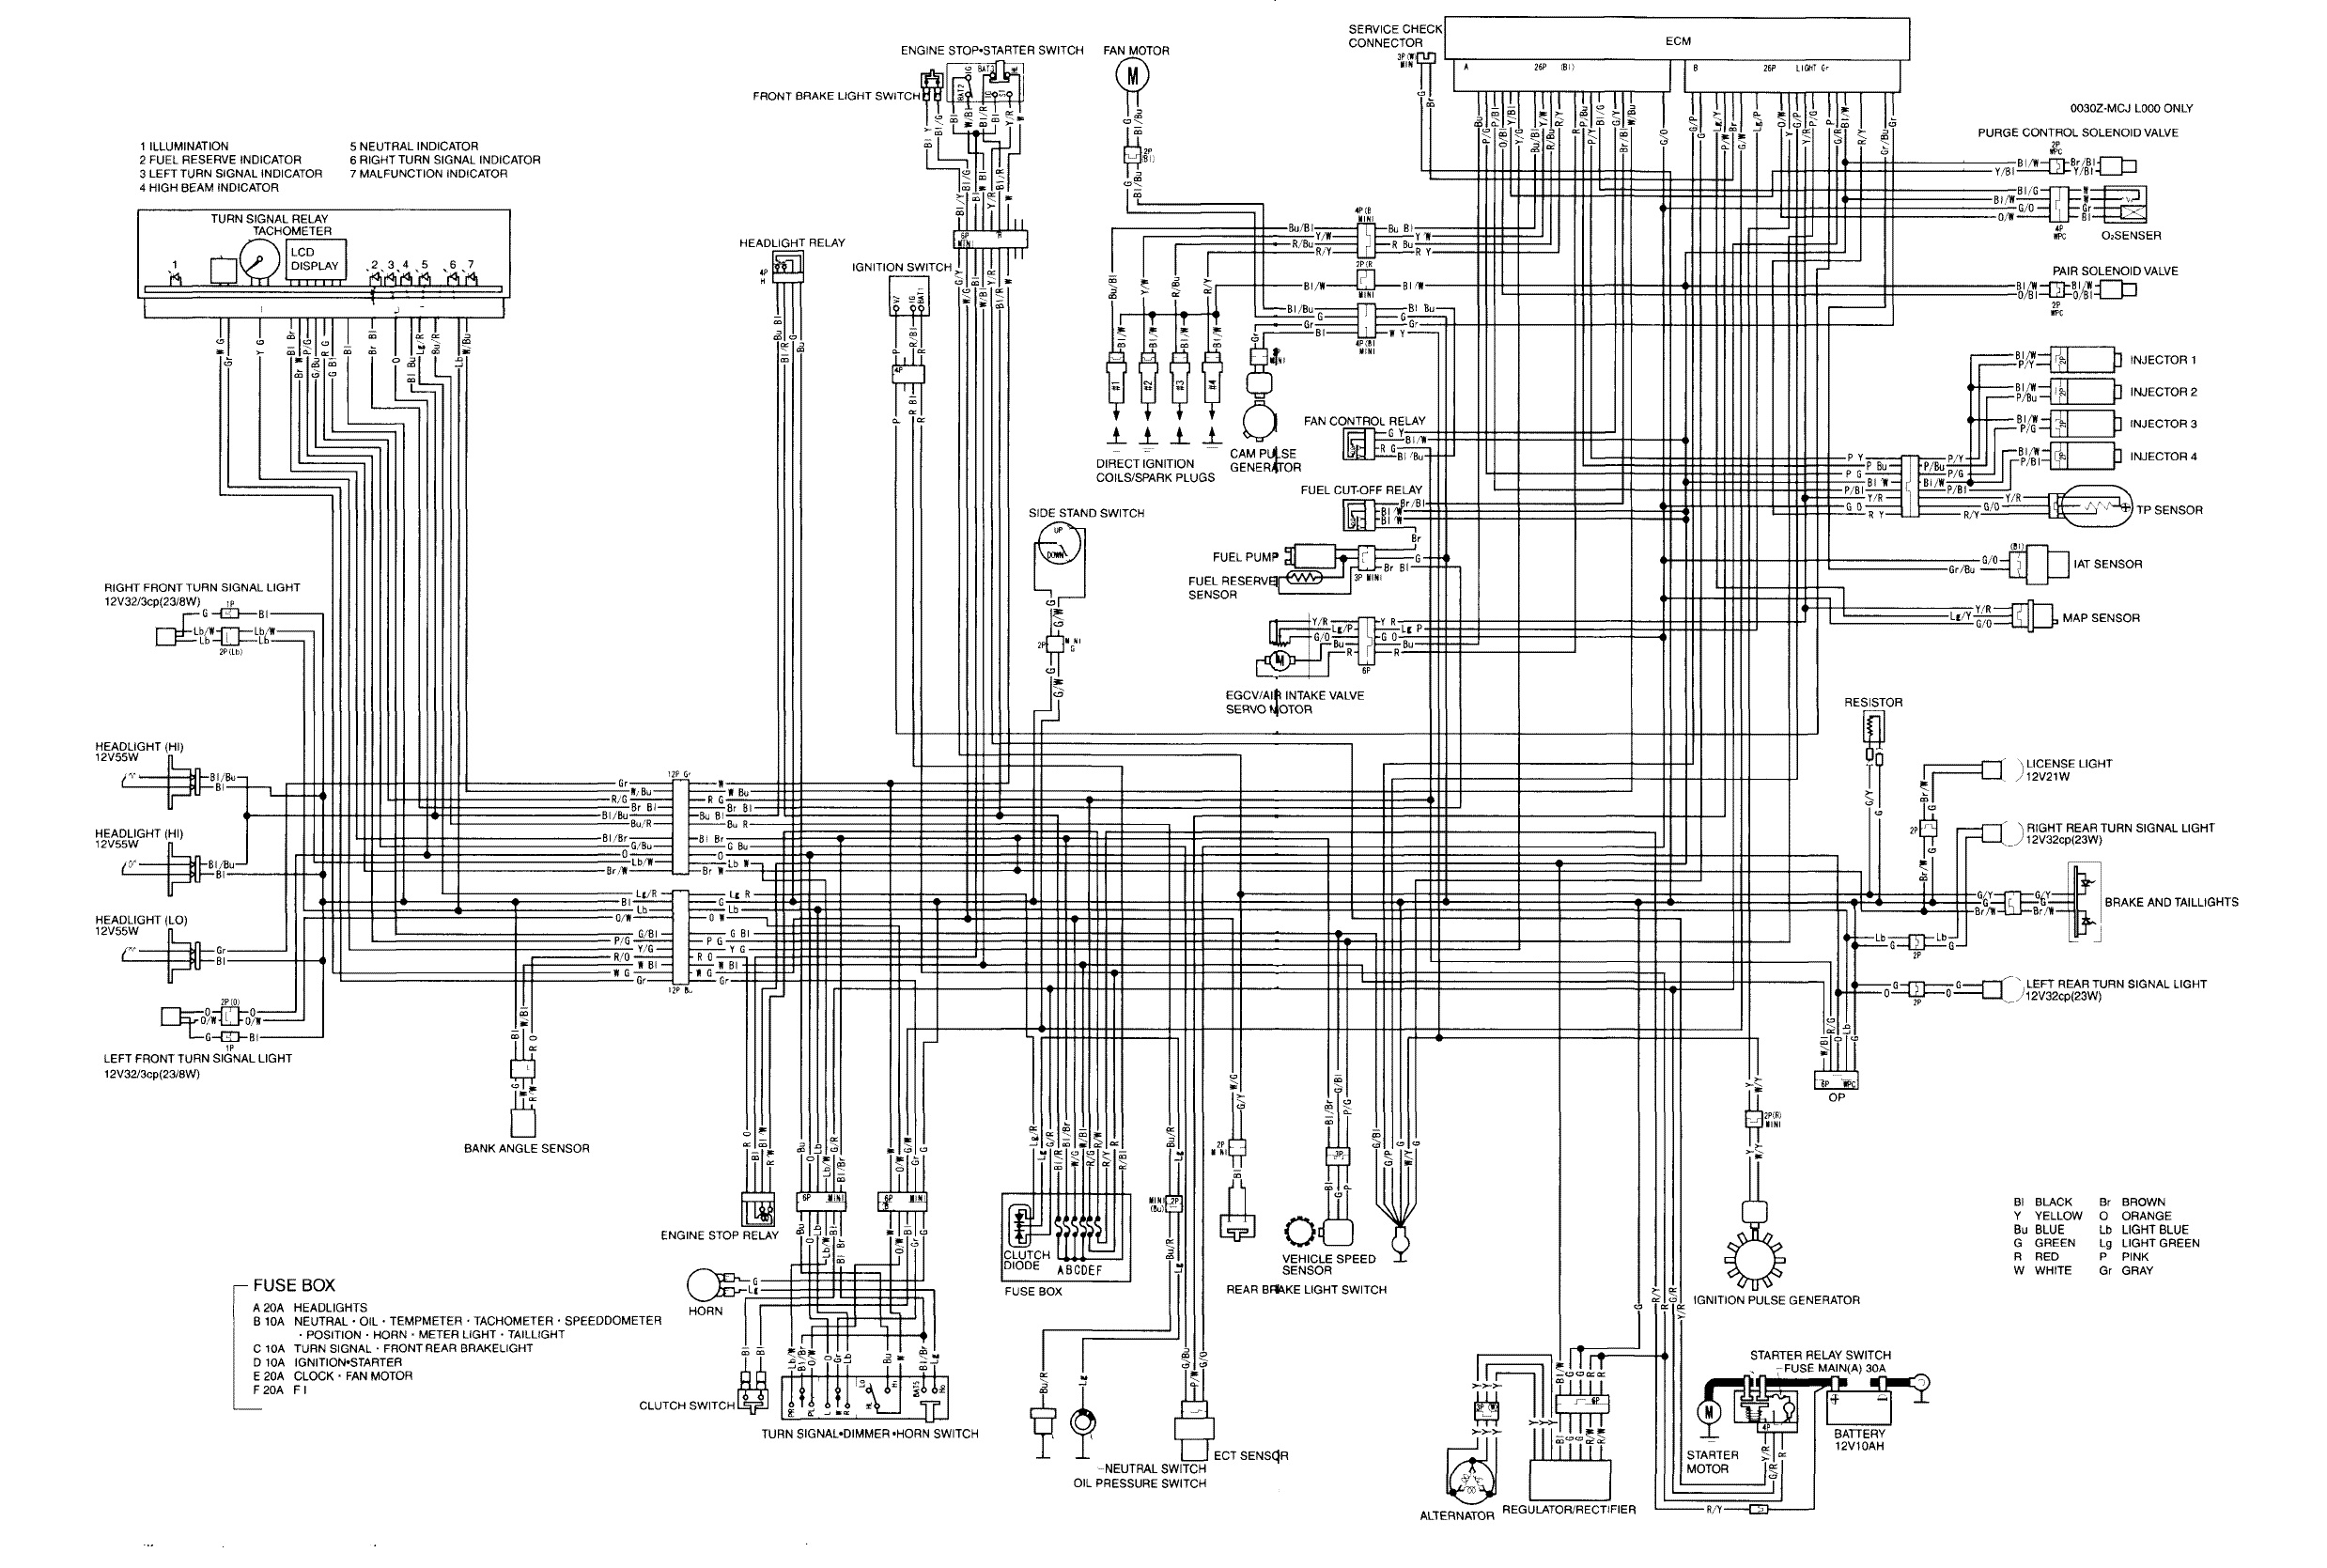 wiring diagram for a honda ruckus – the wiring diagram,Wiring diagram,Wiring Diagram For A Honda Ruckus